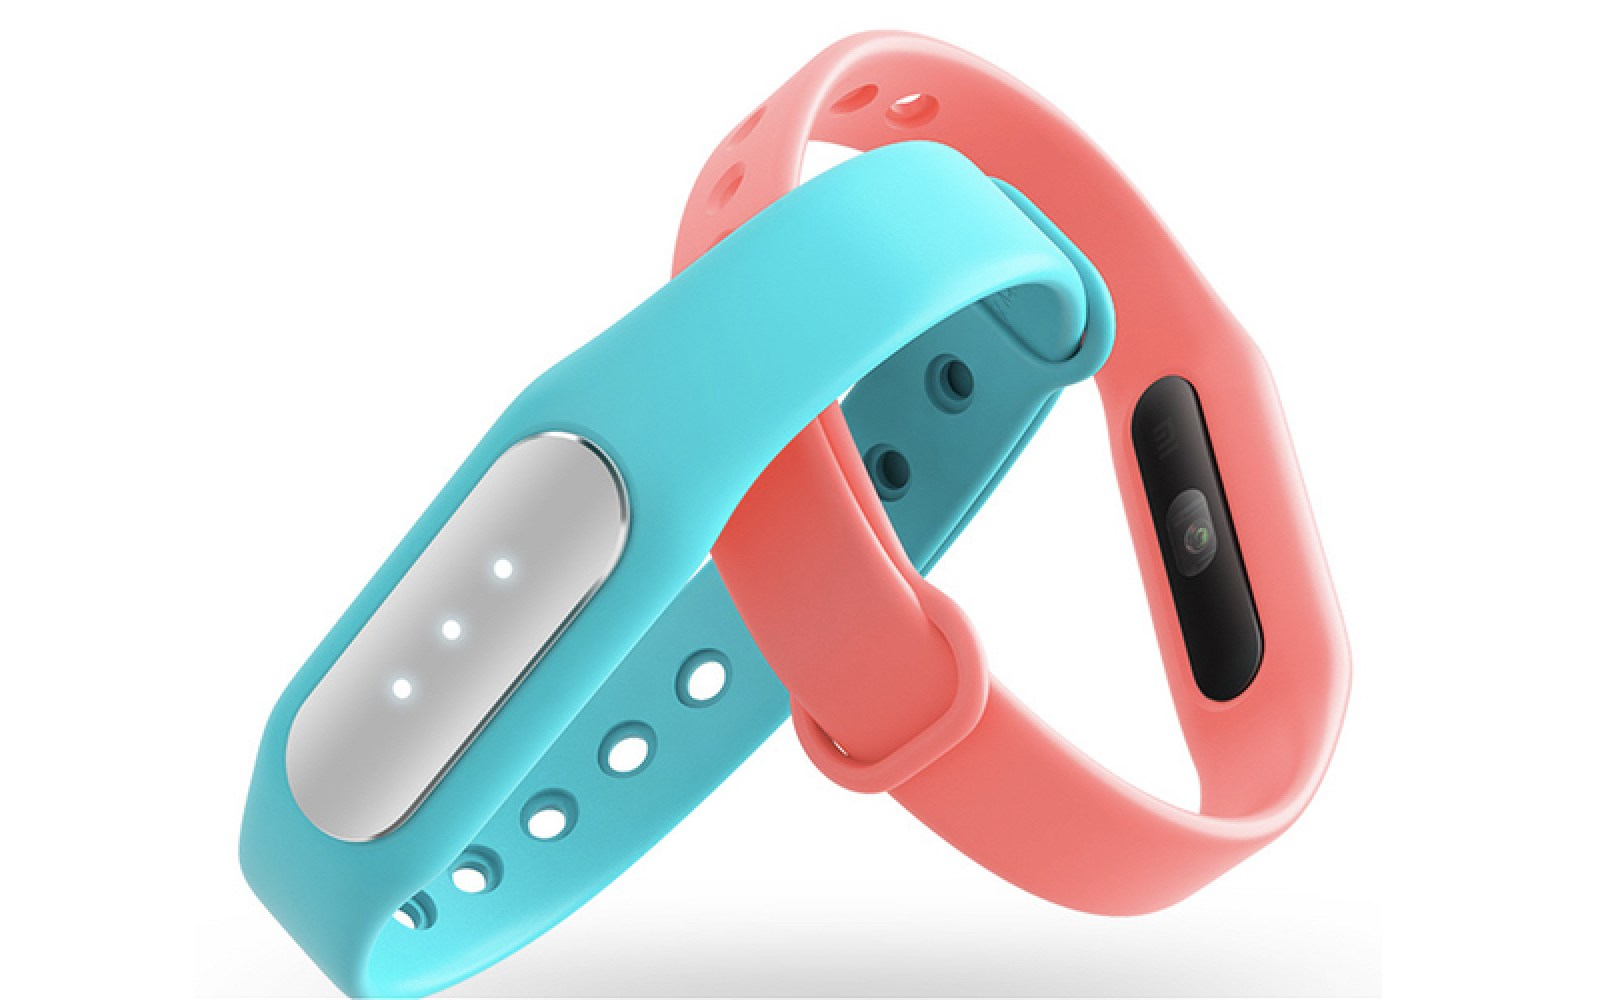 Xiaomi unveils 2nd gen Mi Band fitness tracker with heart-rate monitor, costs just $15